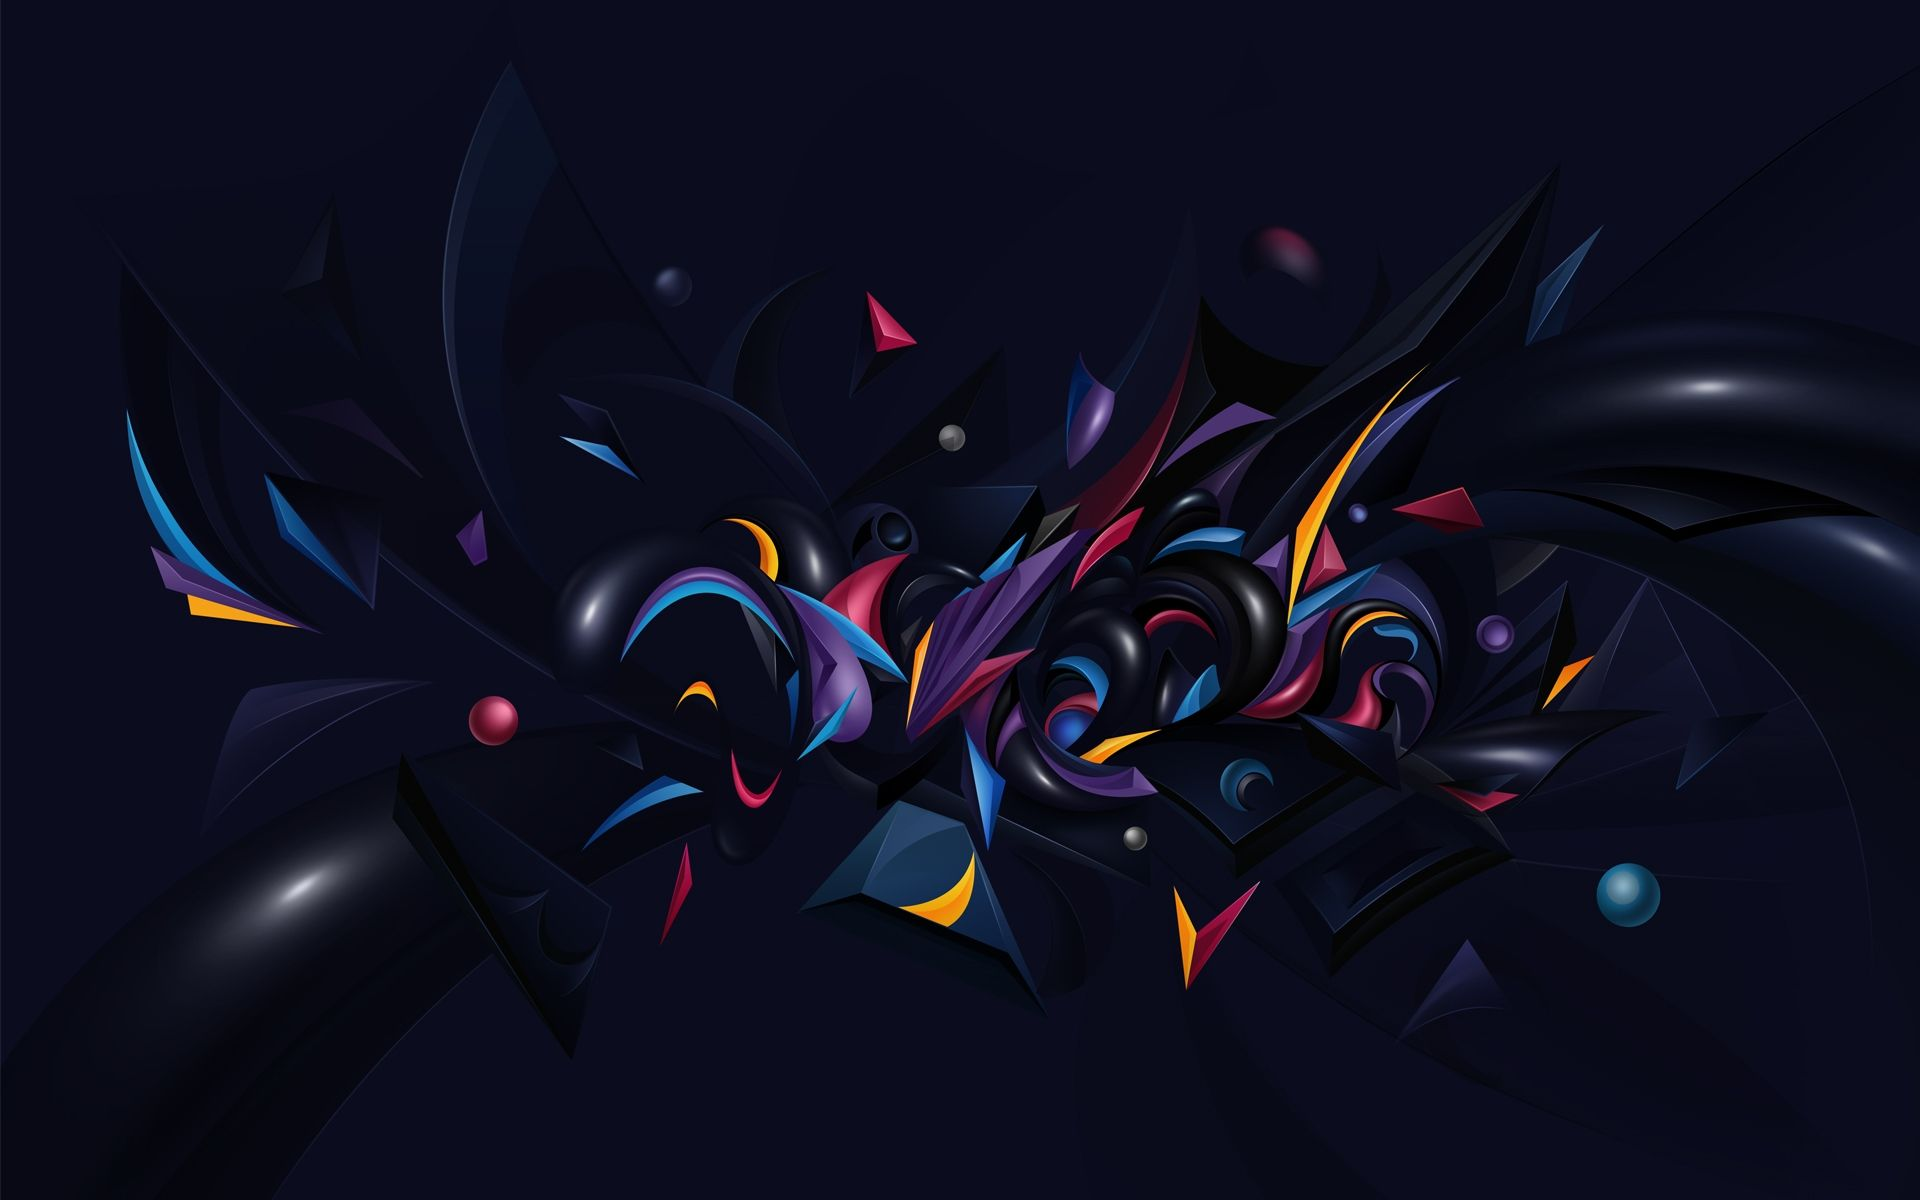 Abstract Chaos High Definition Wallpaper Abstract Abstract Wallpaper Computer Wallpaper Desktop Wallpapers